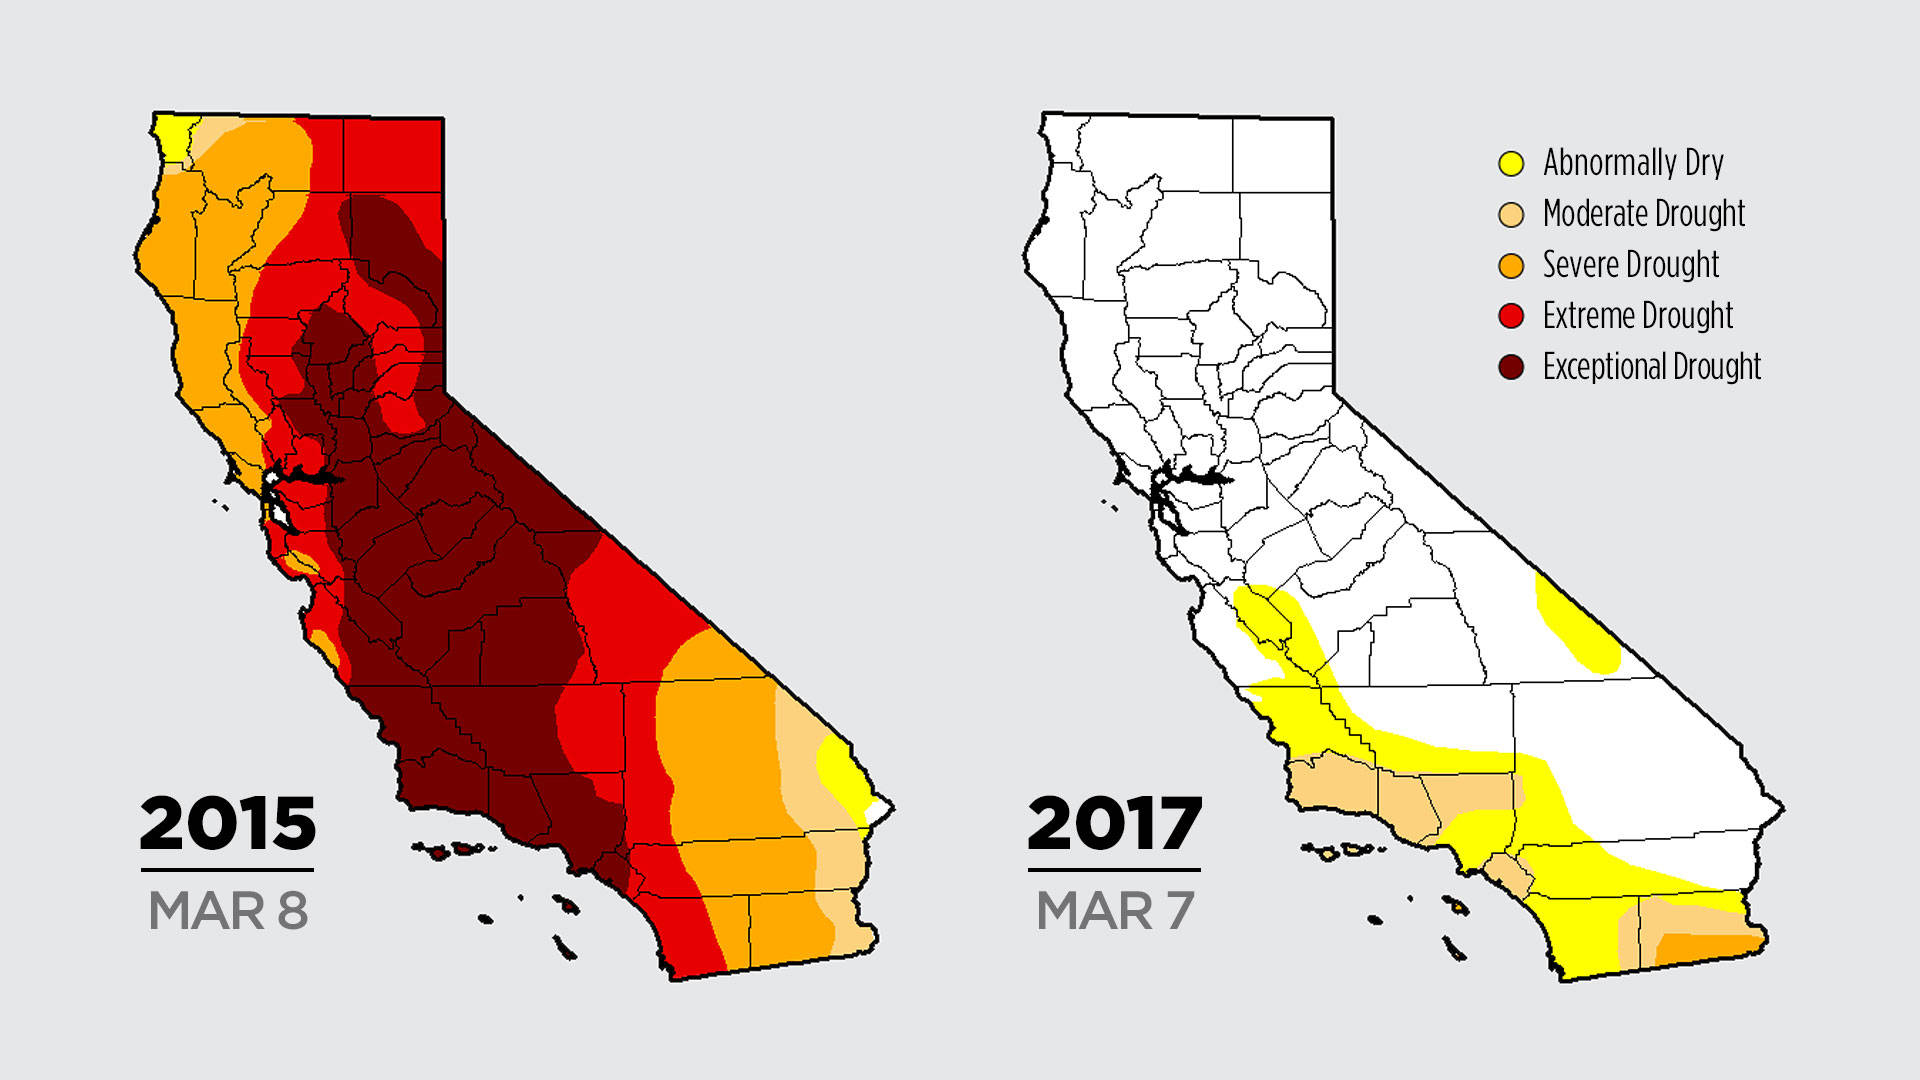 California Drought Map Color Me Dry: Drought Maps Blend Art and Science    But No  California Drought Map